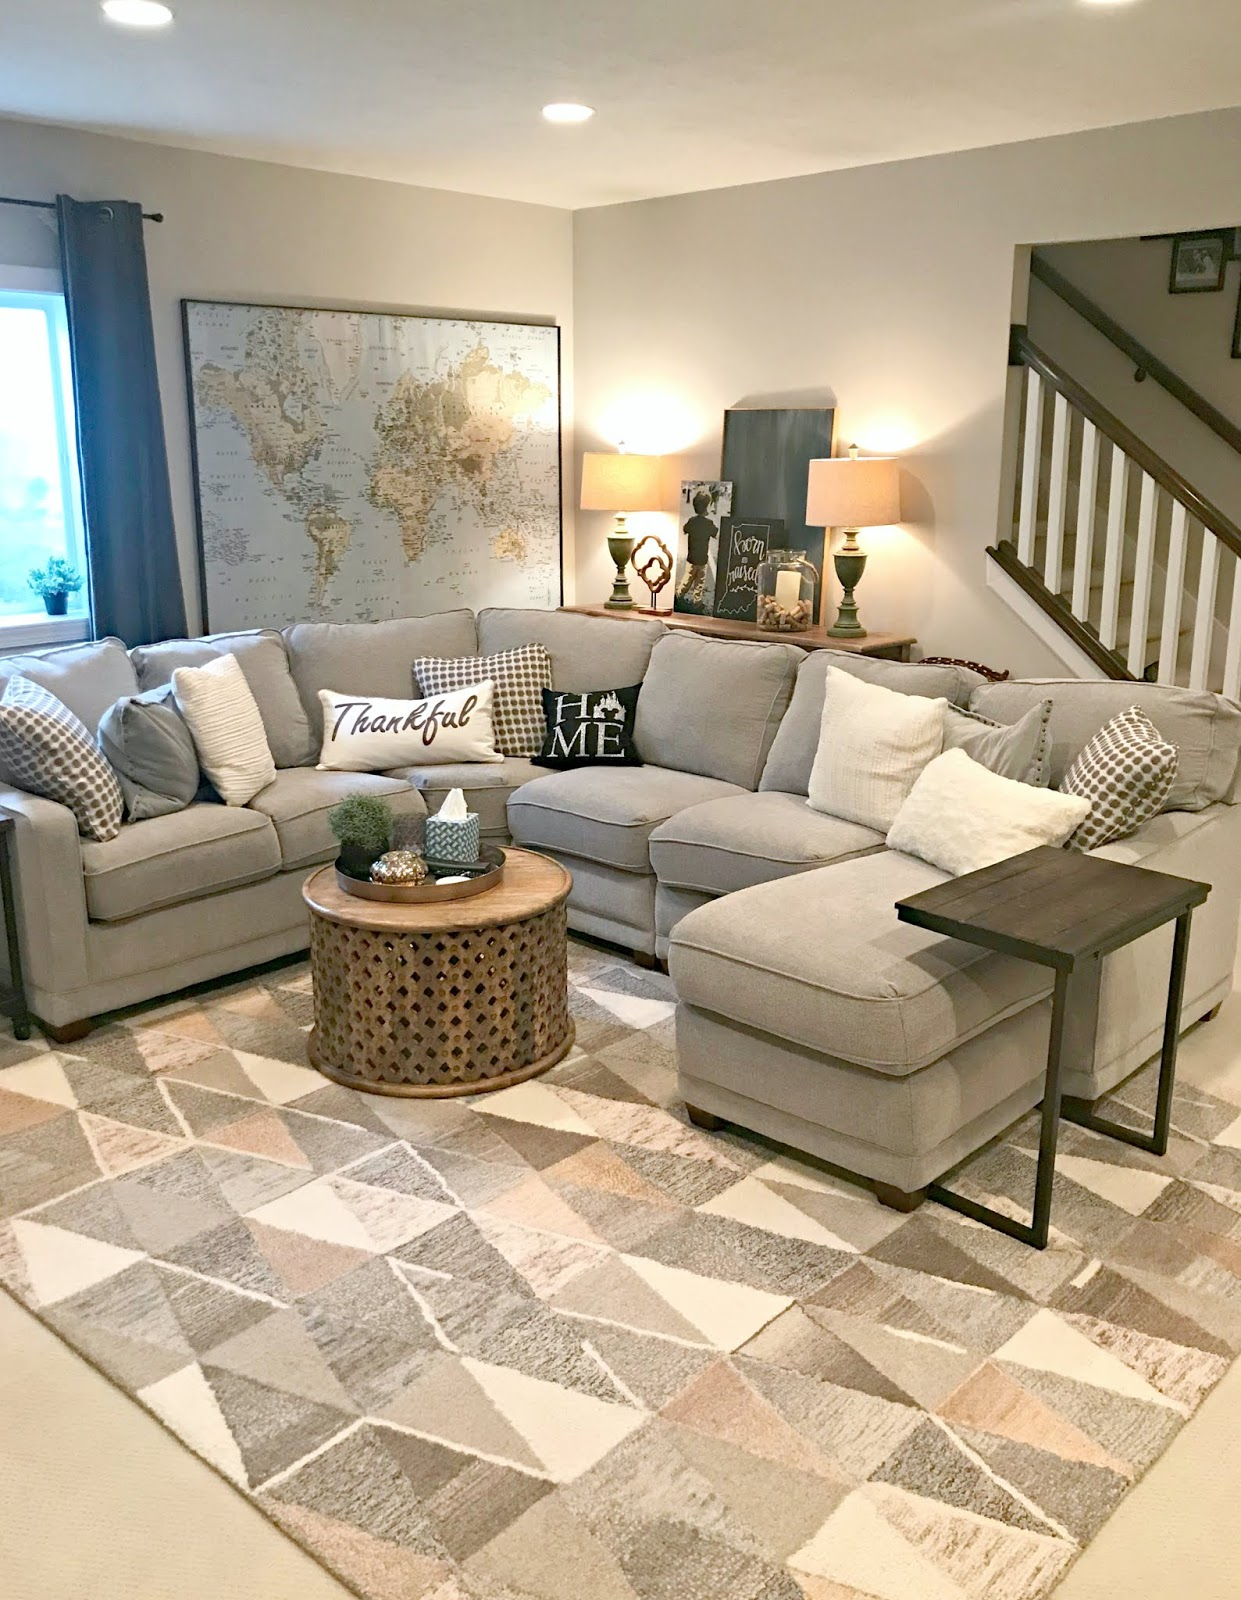 Family room in basement with large sectional